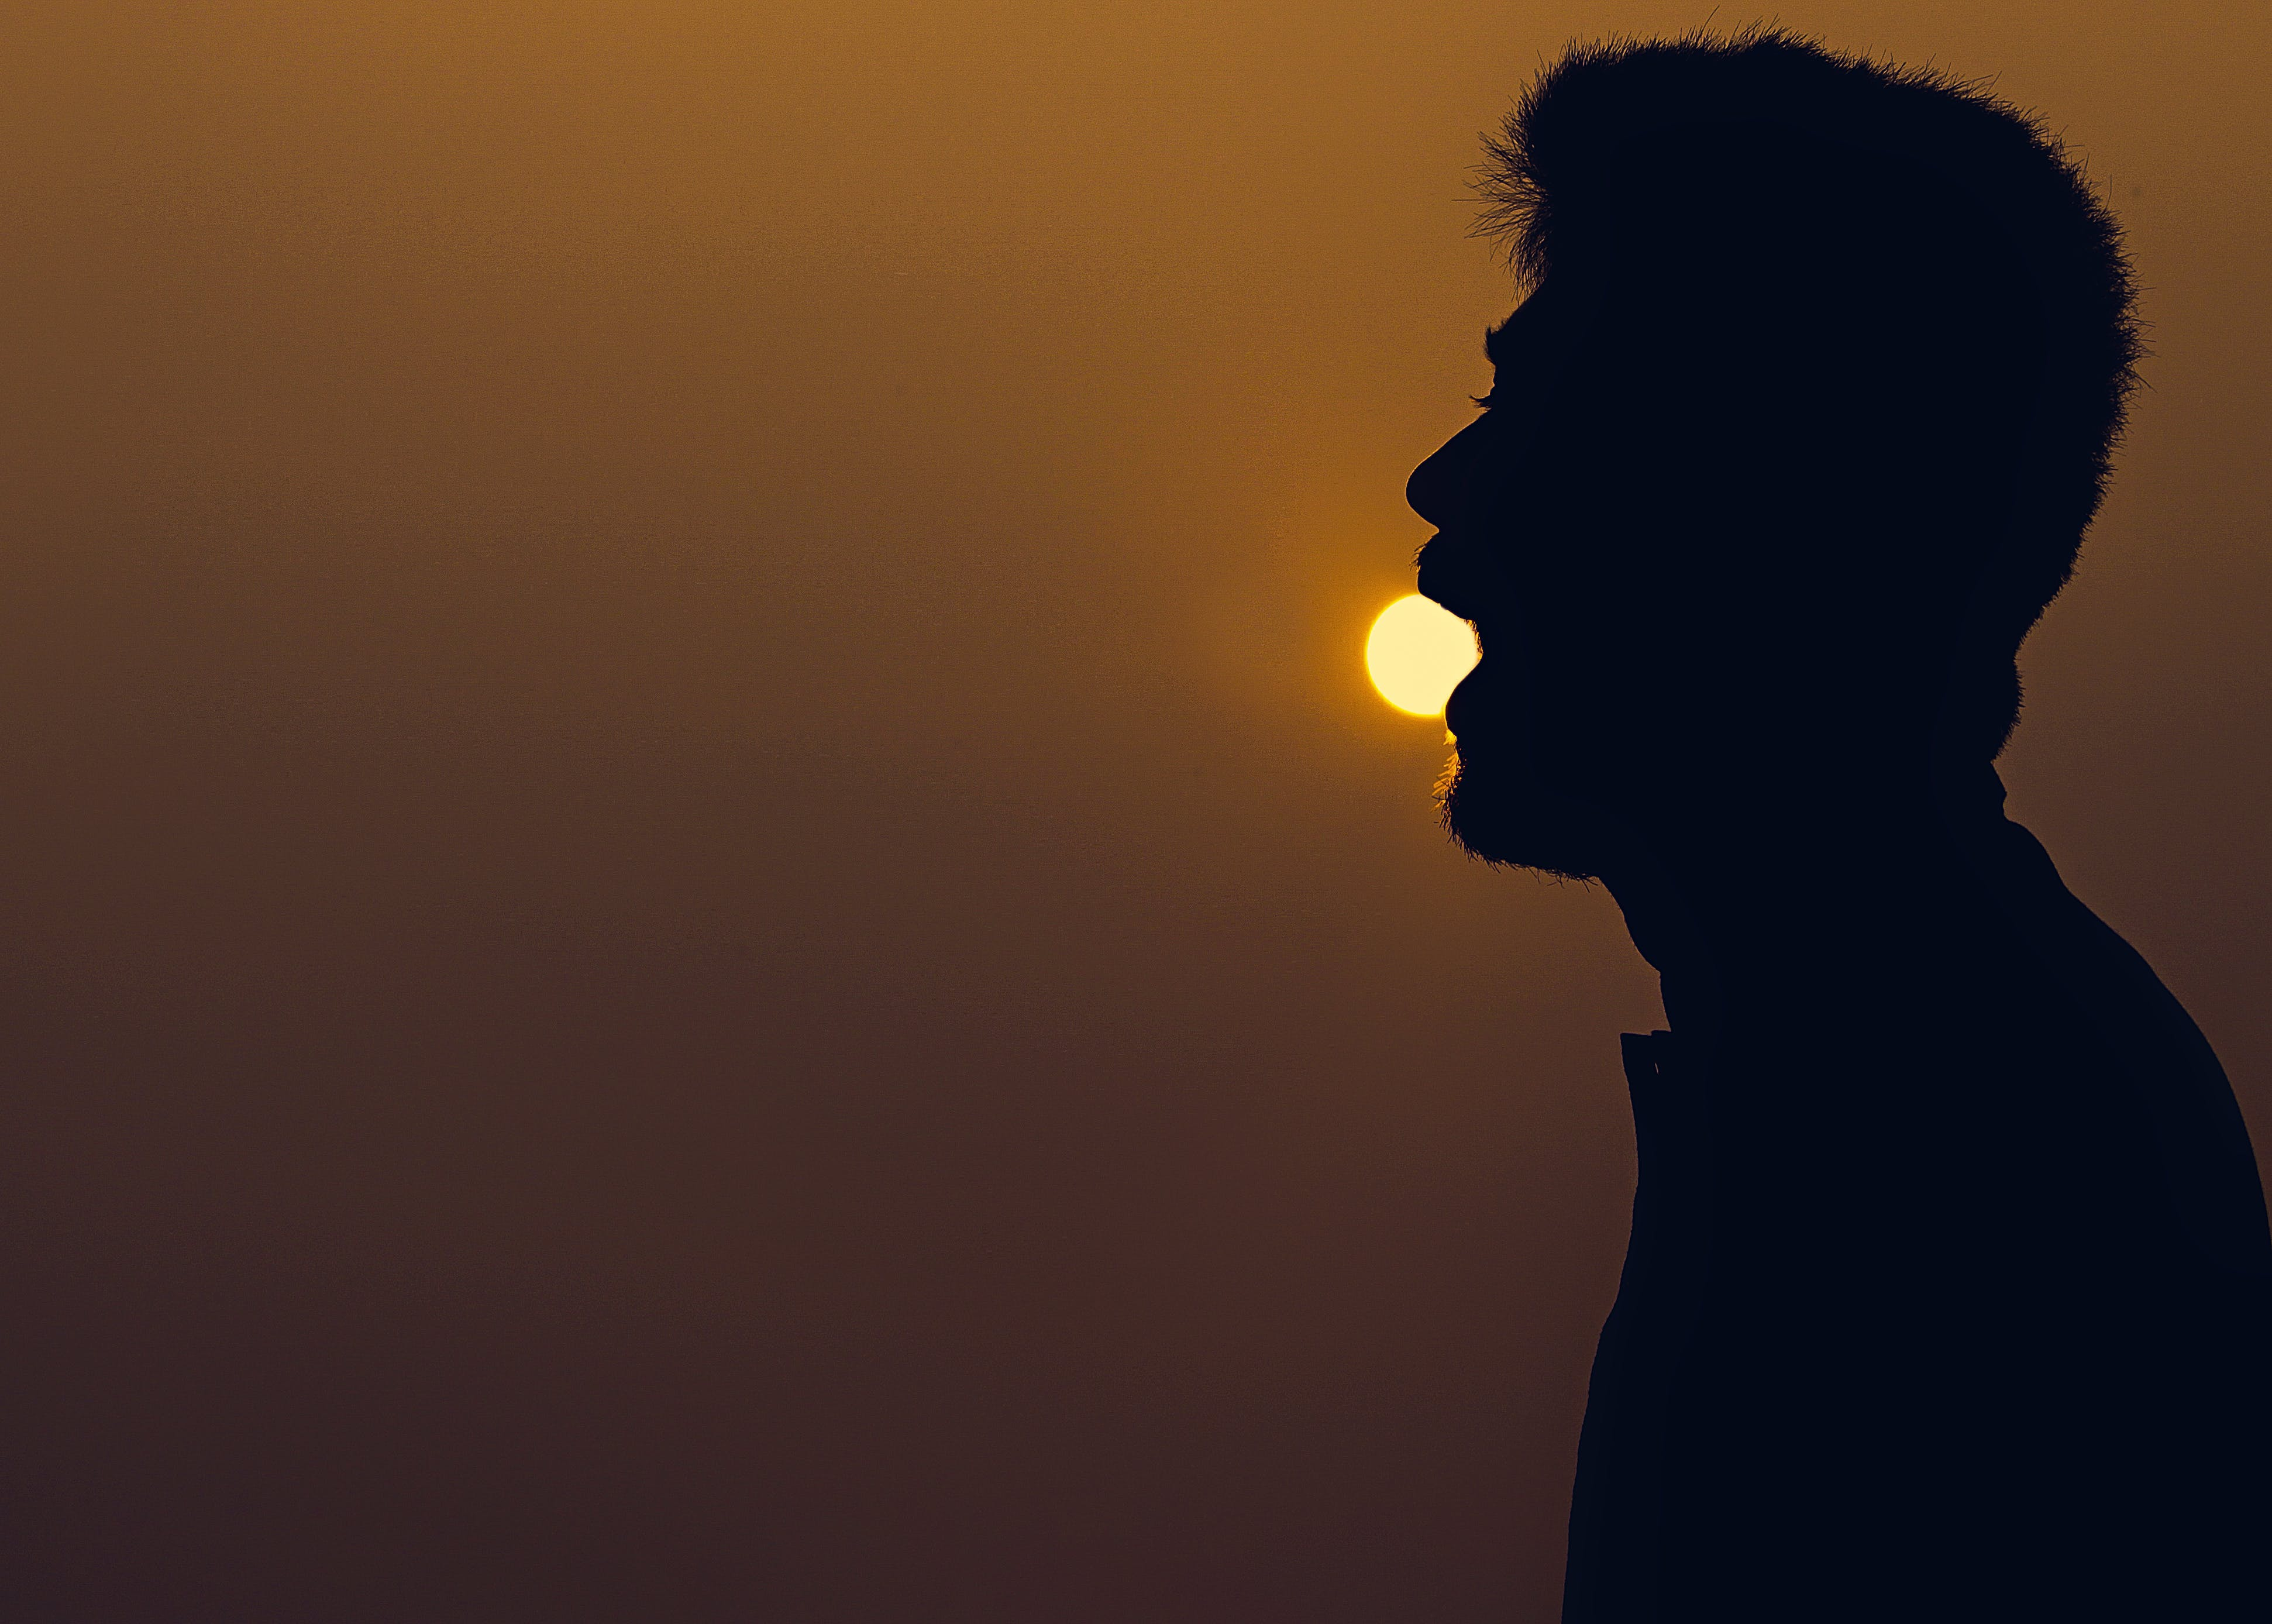 Silhouette of Man over the Horizon